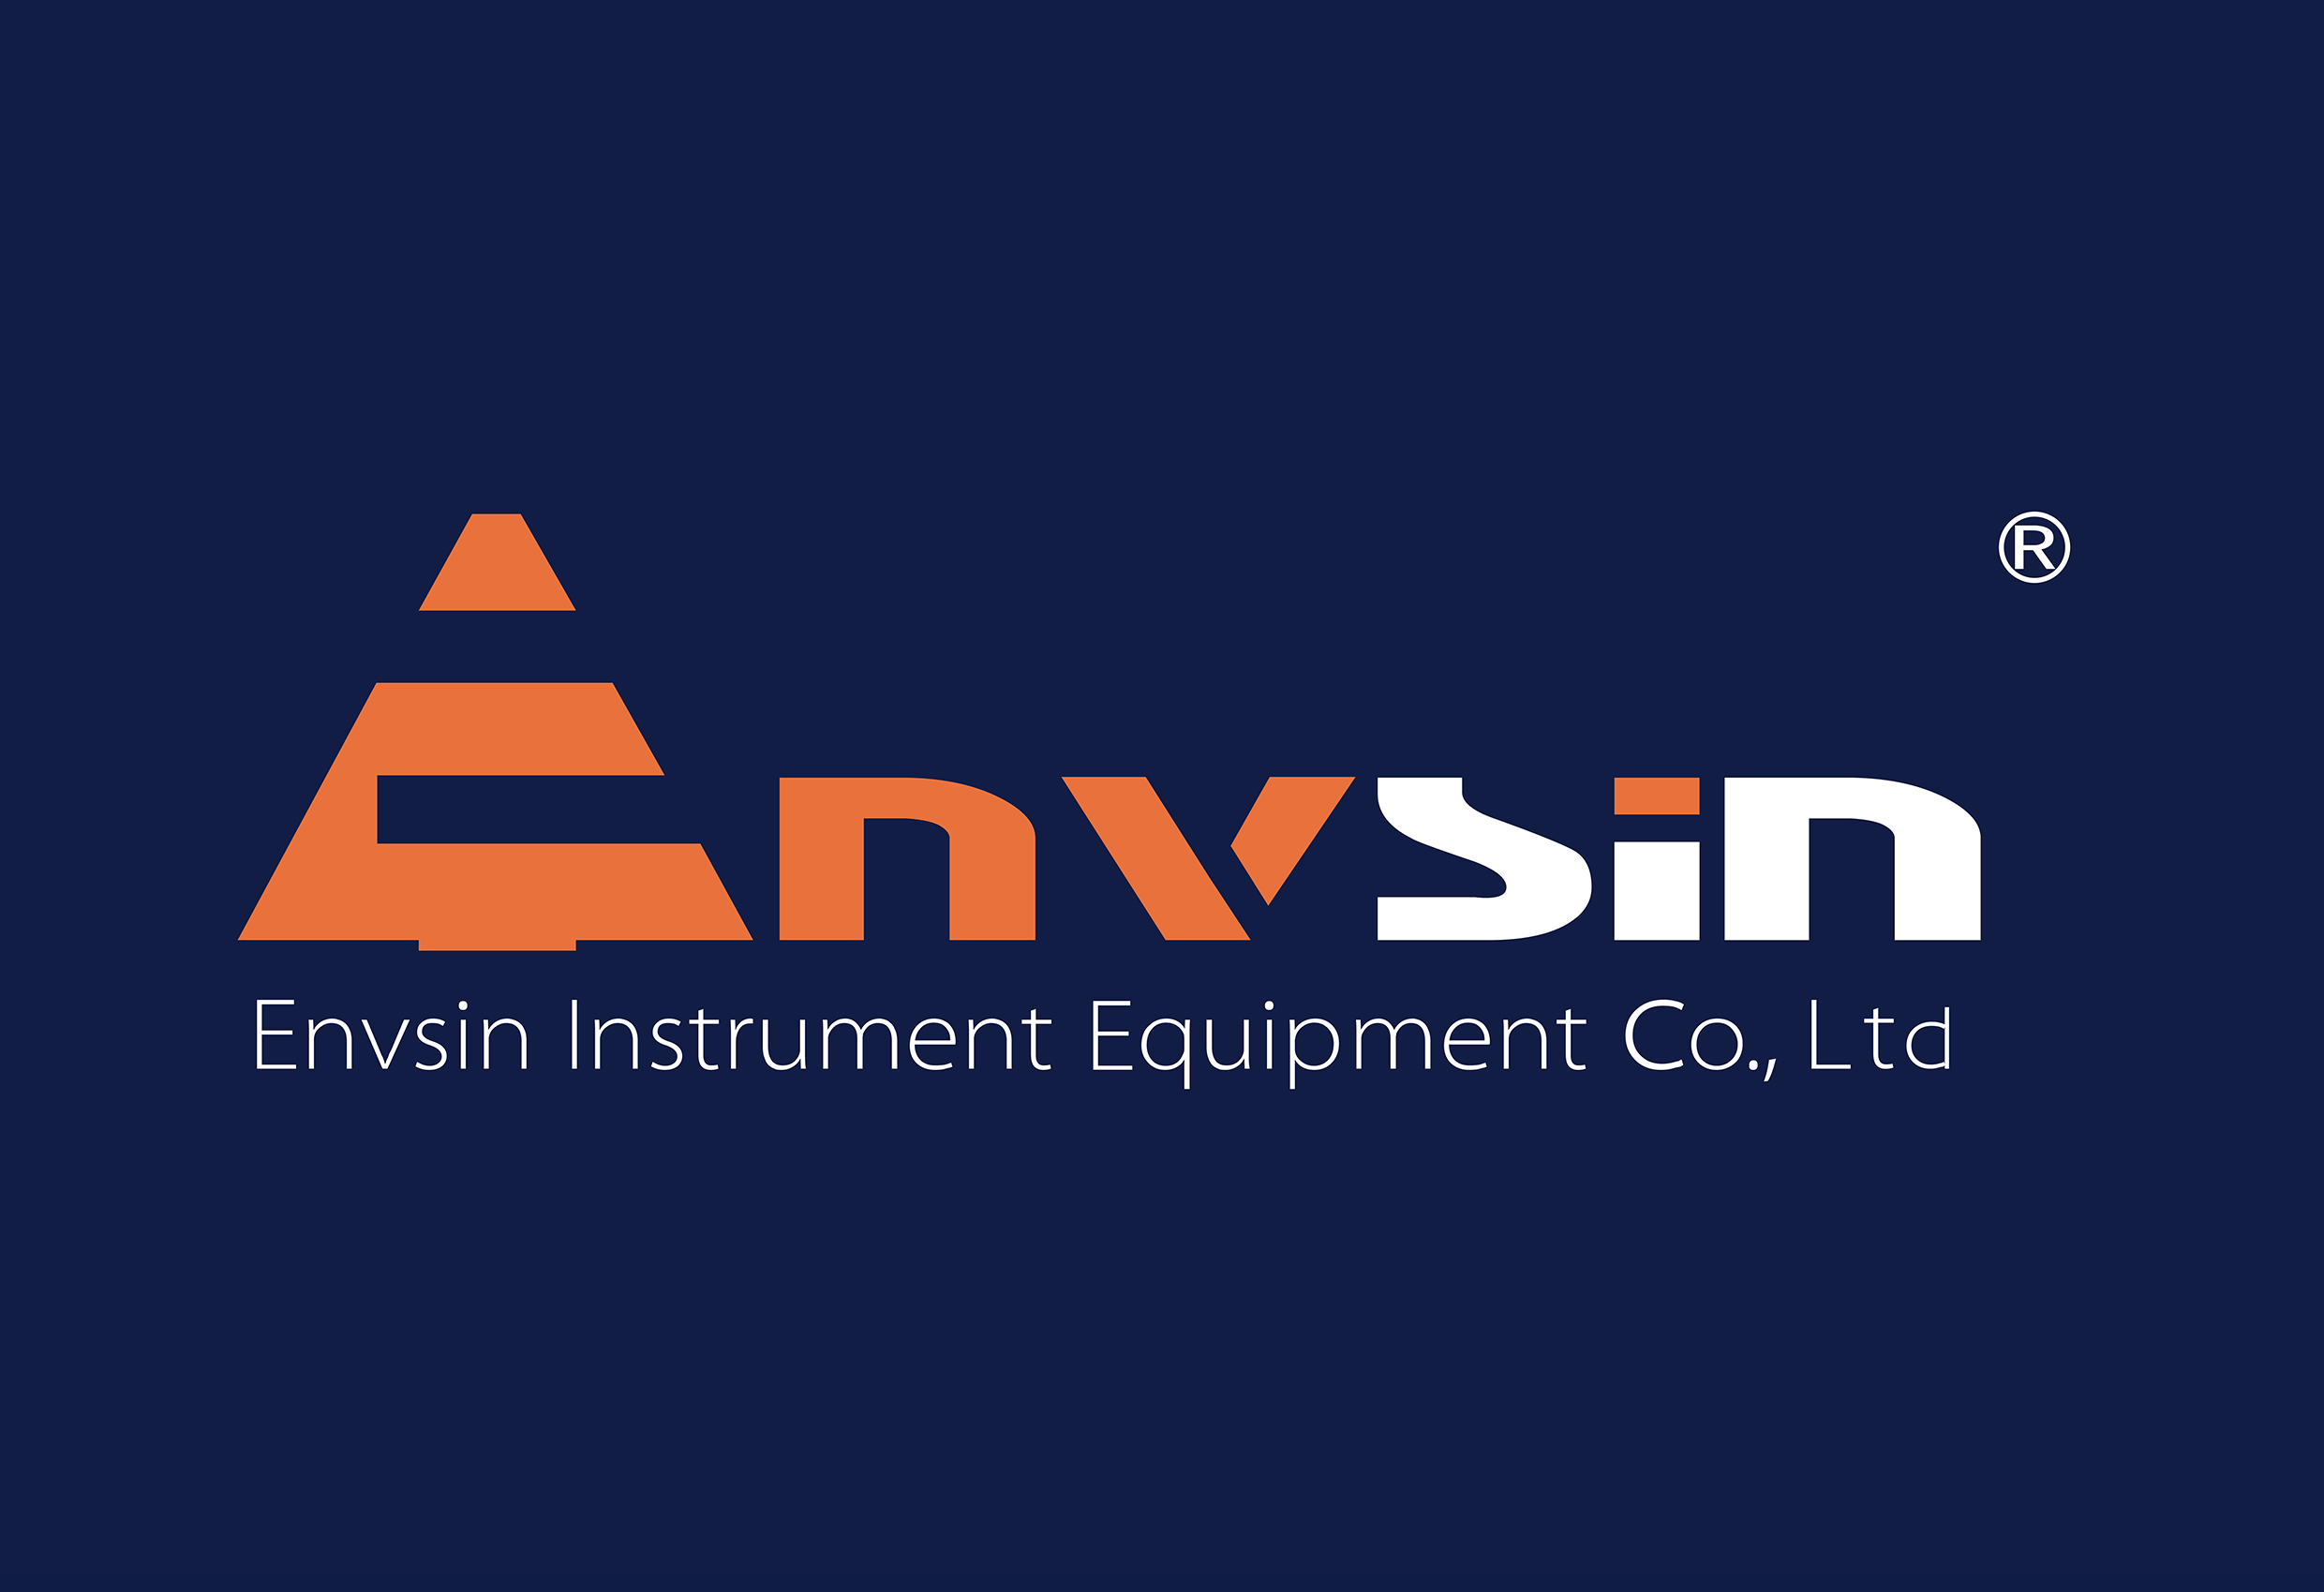 Envsin dedicates to Automotive Industry to improve vehicle safety